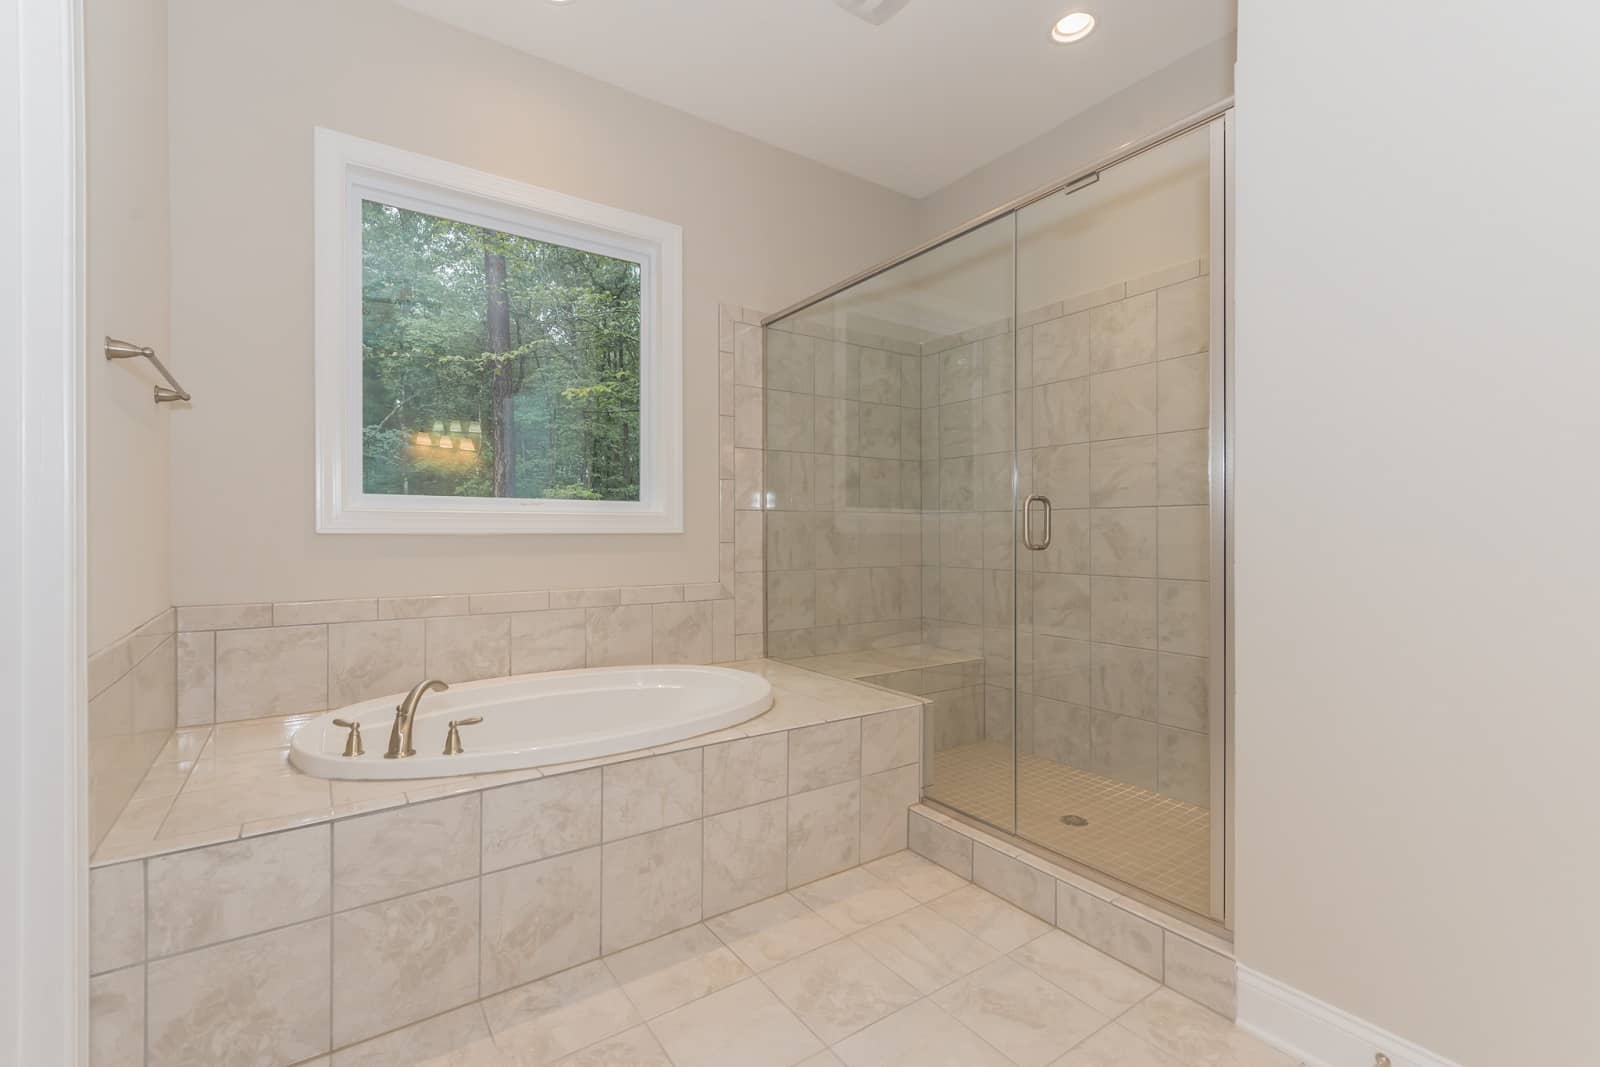 Real Estate Photography in Rock Hill - NC - USA - Bathroom View